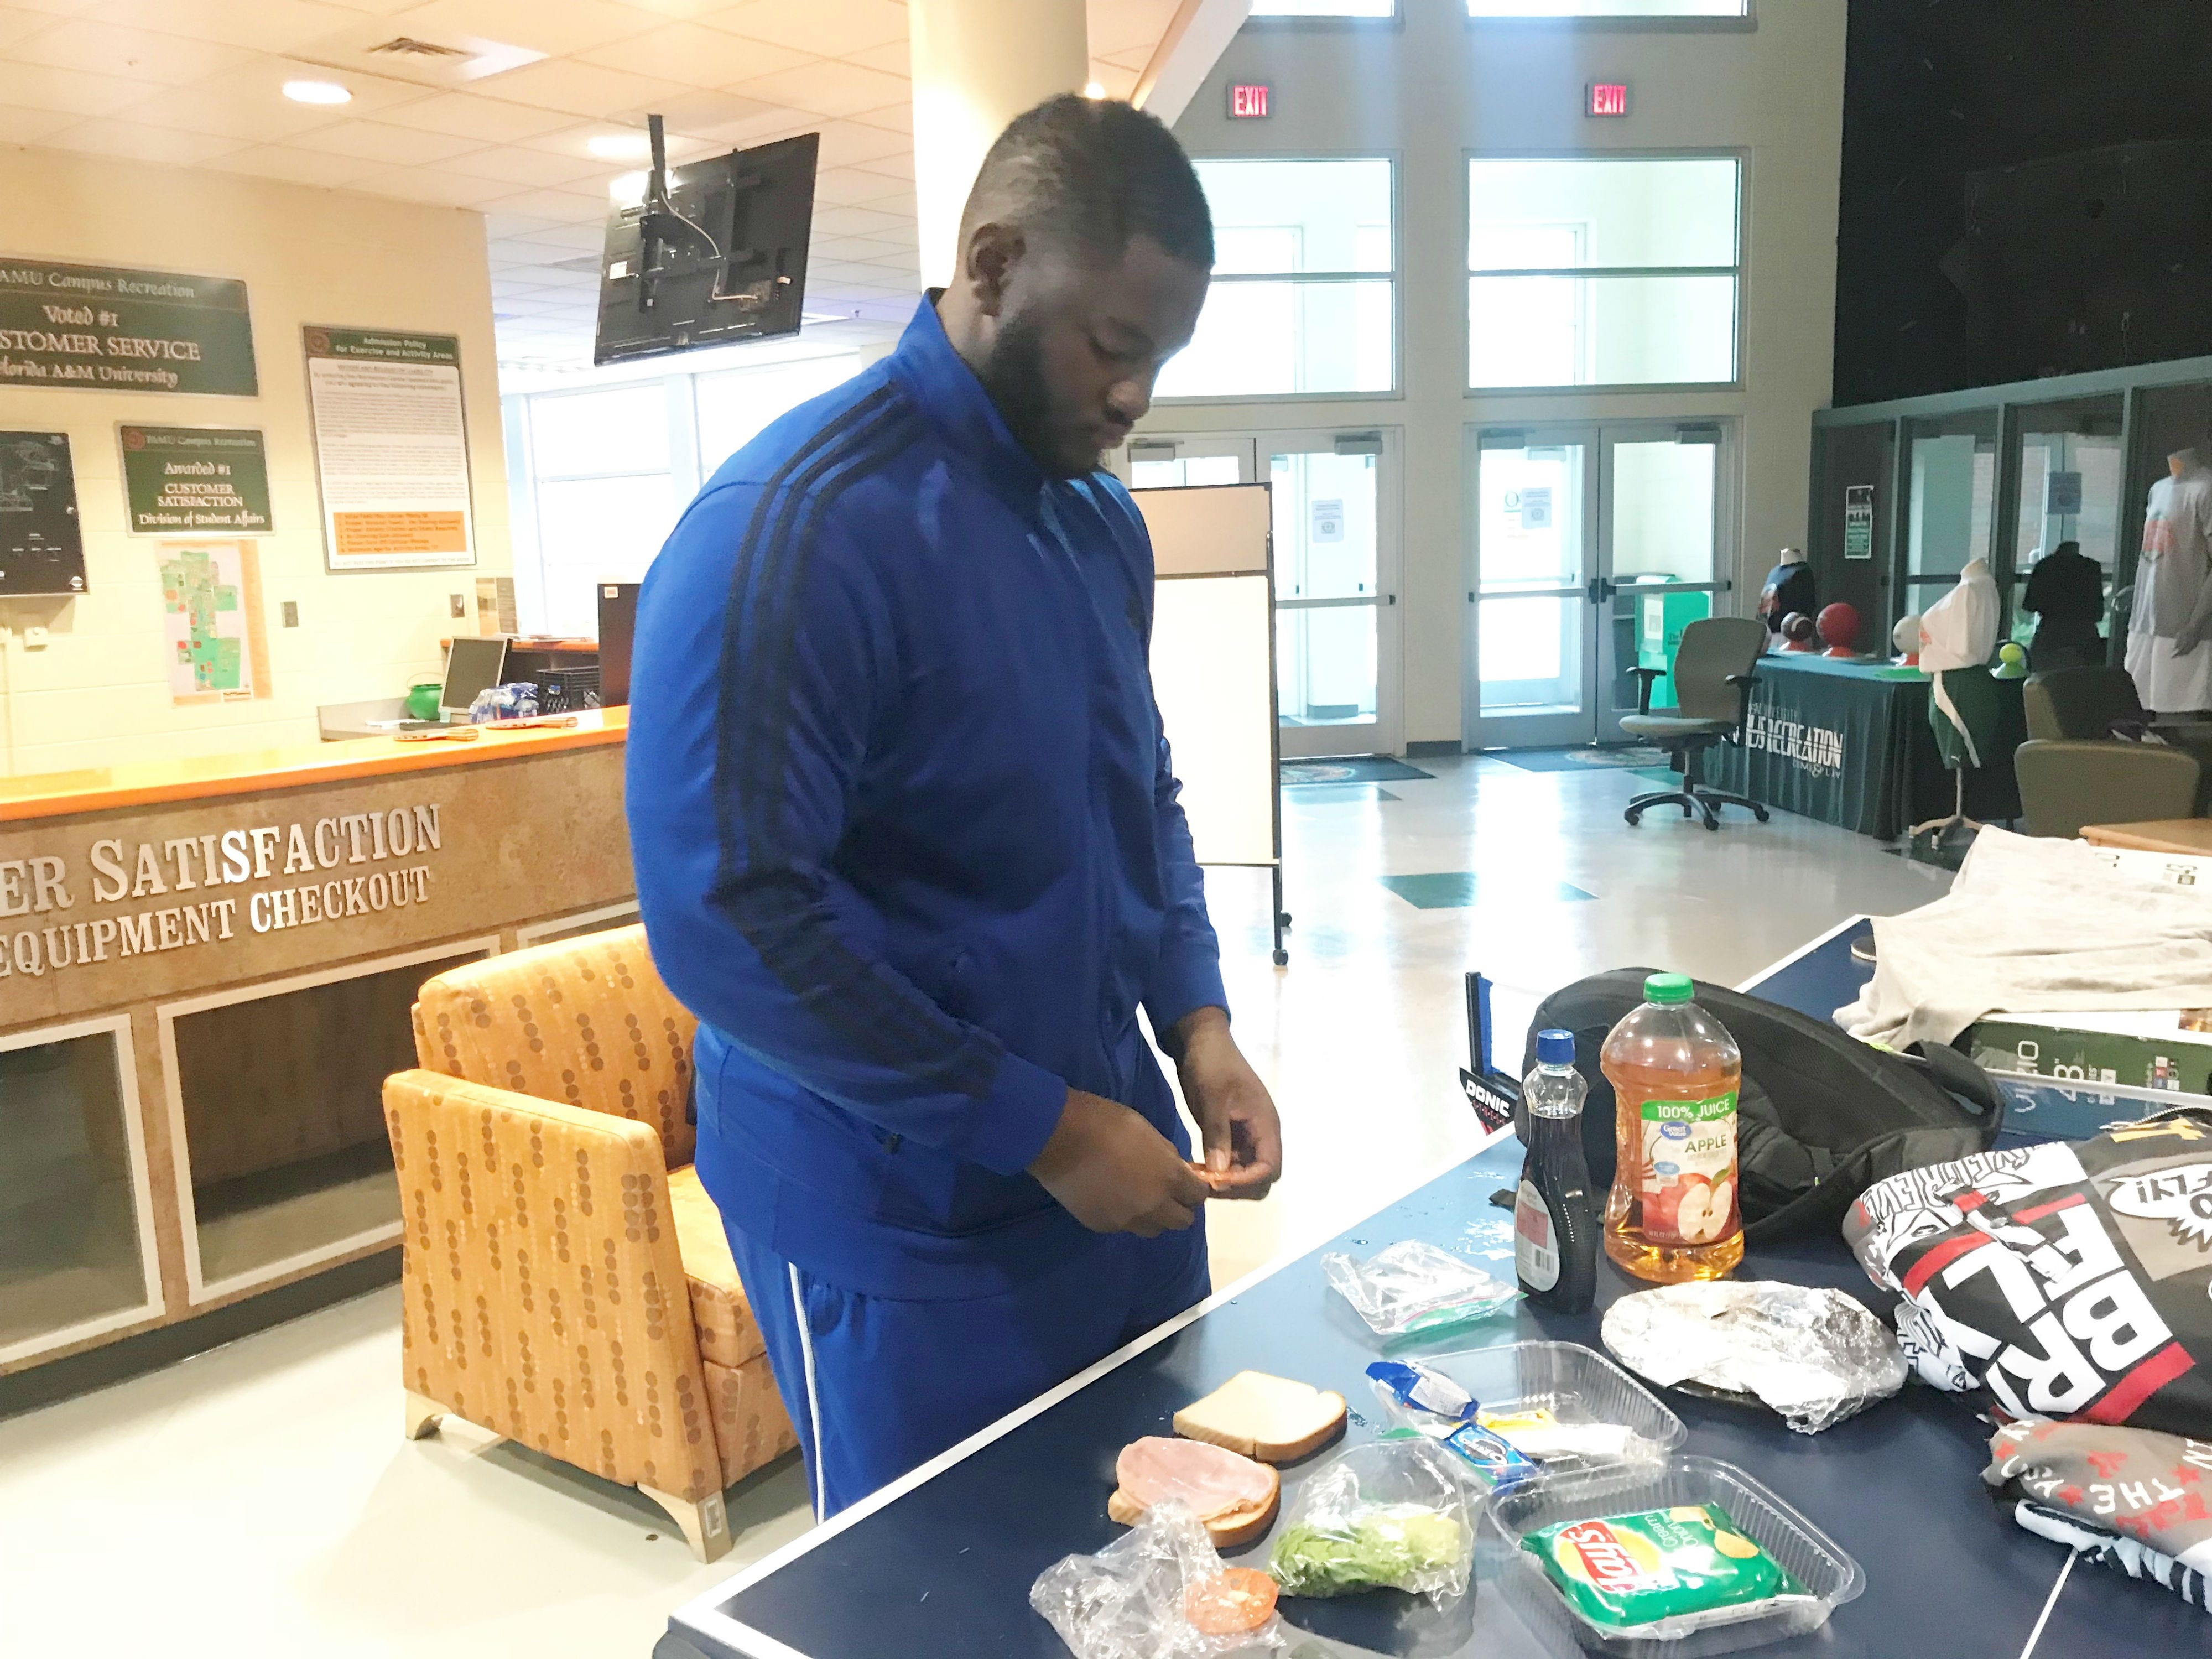 FAMU offensive lineman Jalen Brayboy makes a sandwich for lunch. The Rattlers are safe and sound inside the Hansel E. Tookes, Sr. Student Recreation Center.